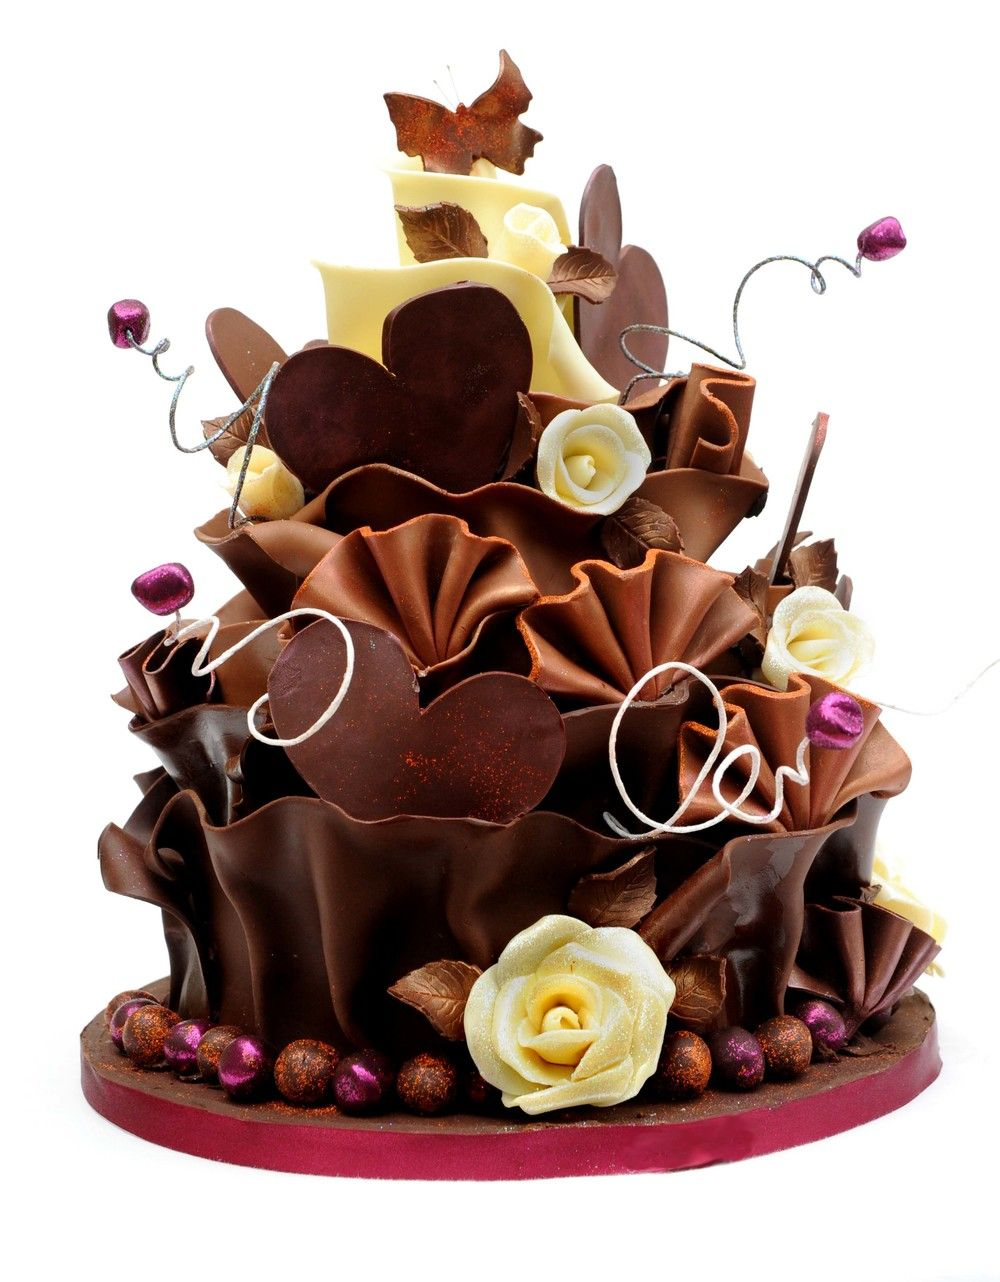 Most Beautiful Chocolate Birthday Cakes Simple Design 2 On Cake